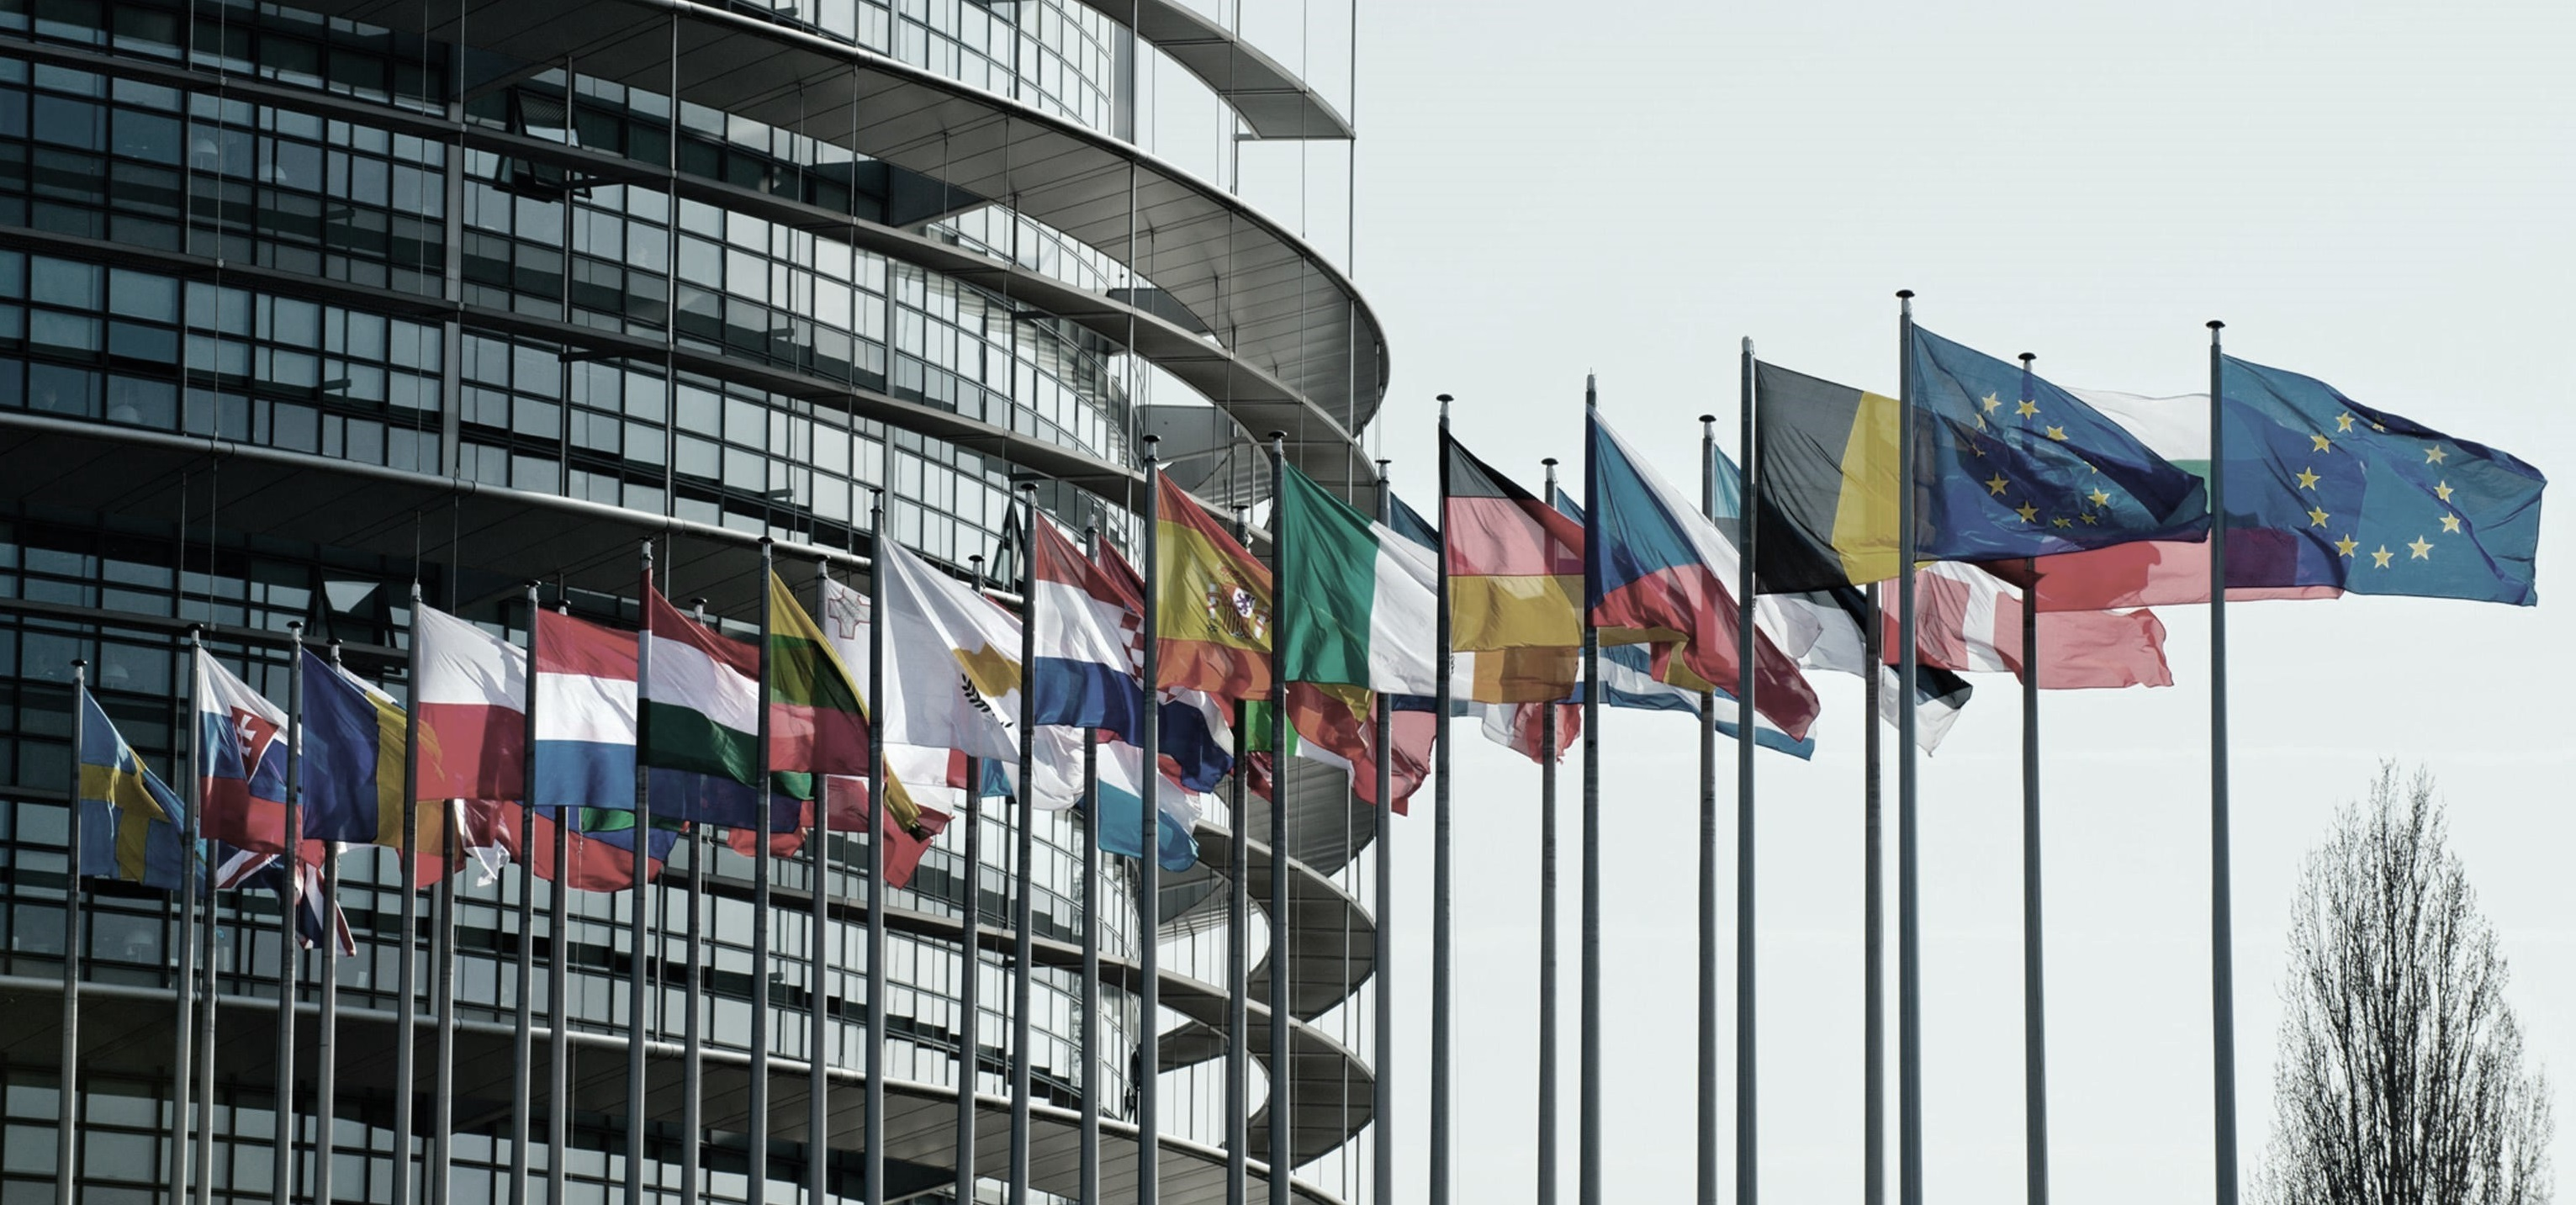 Newsalert - European payment order: if the defendant challenges the order, the claimant needs to take action